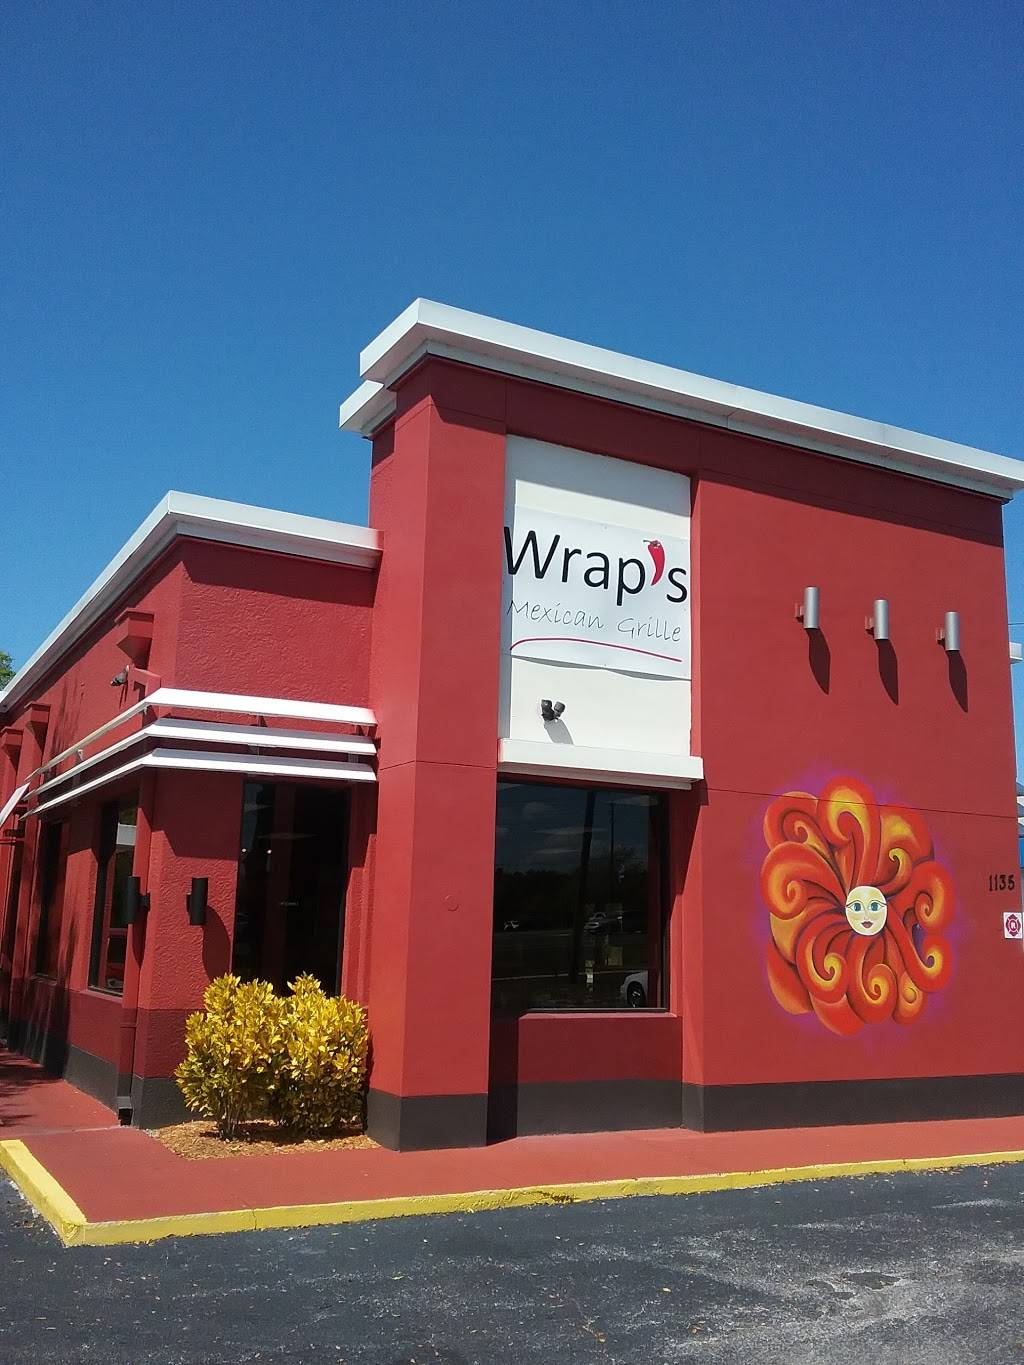 Wraps Mexican Grille & Restaurant | restaurant | 1135 Commercial Way, Spring Hill, FL 34606, USA | 3526847386 OR +1 352-684-7386